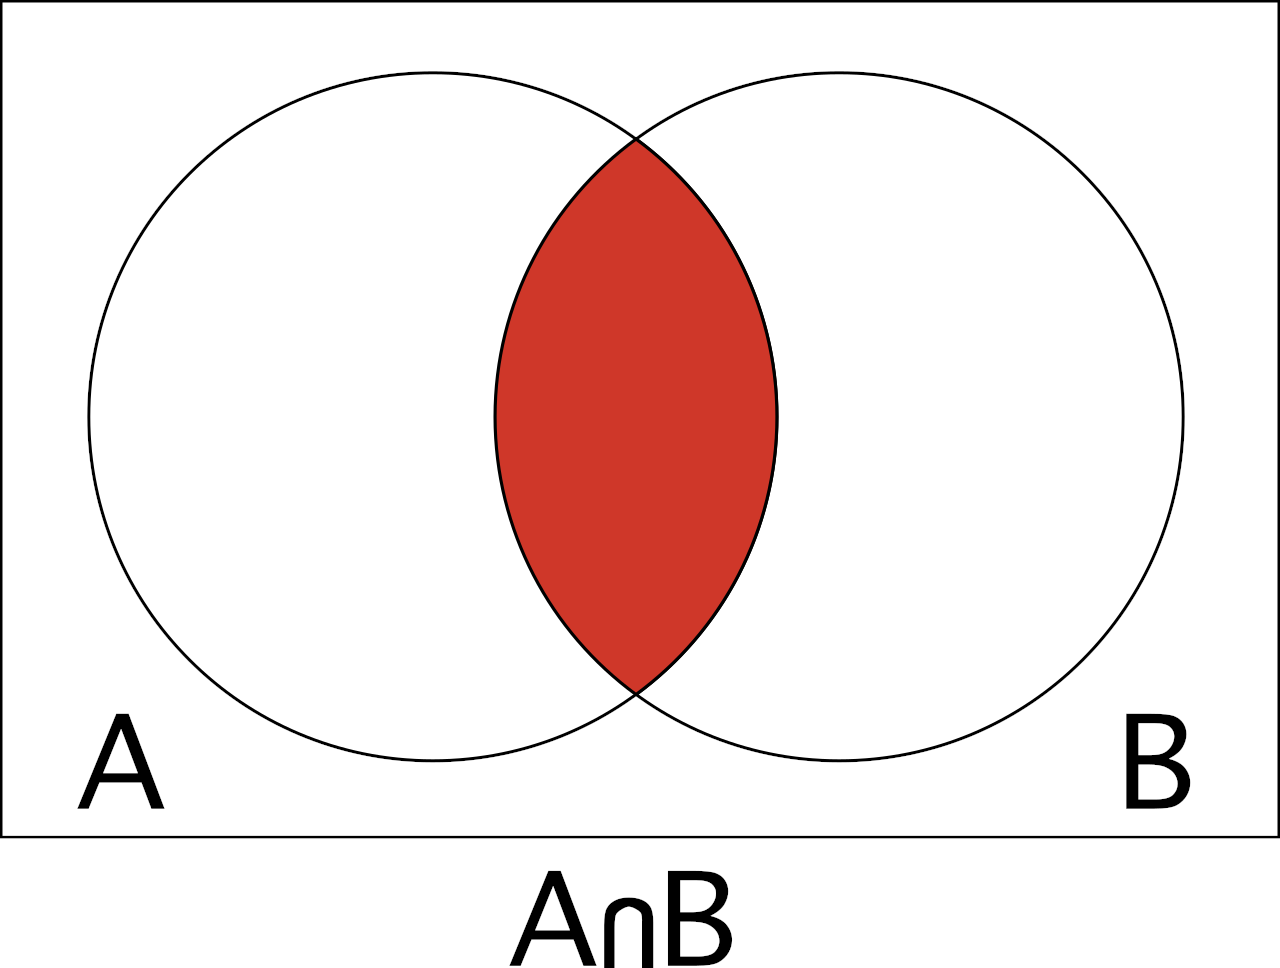 Venn diagram to help visualize the intersection of A and B